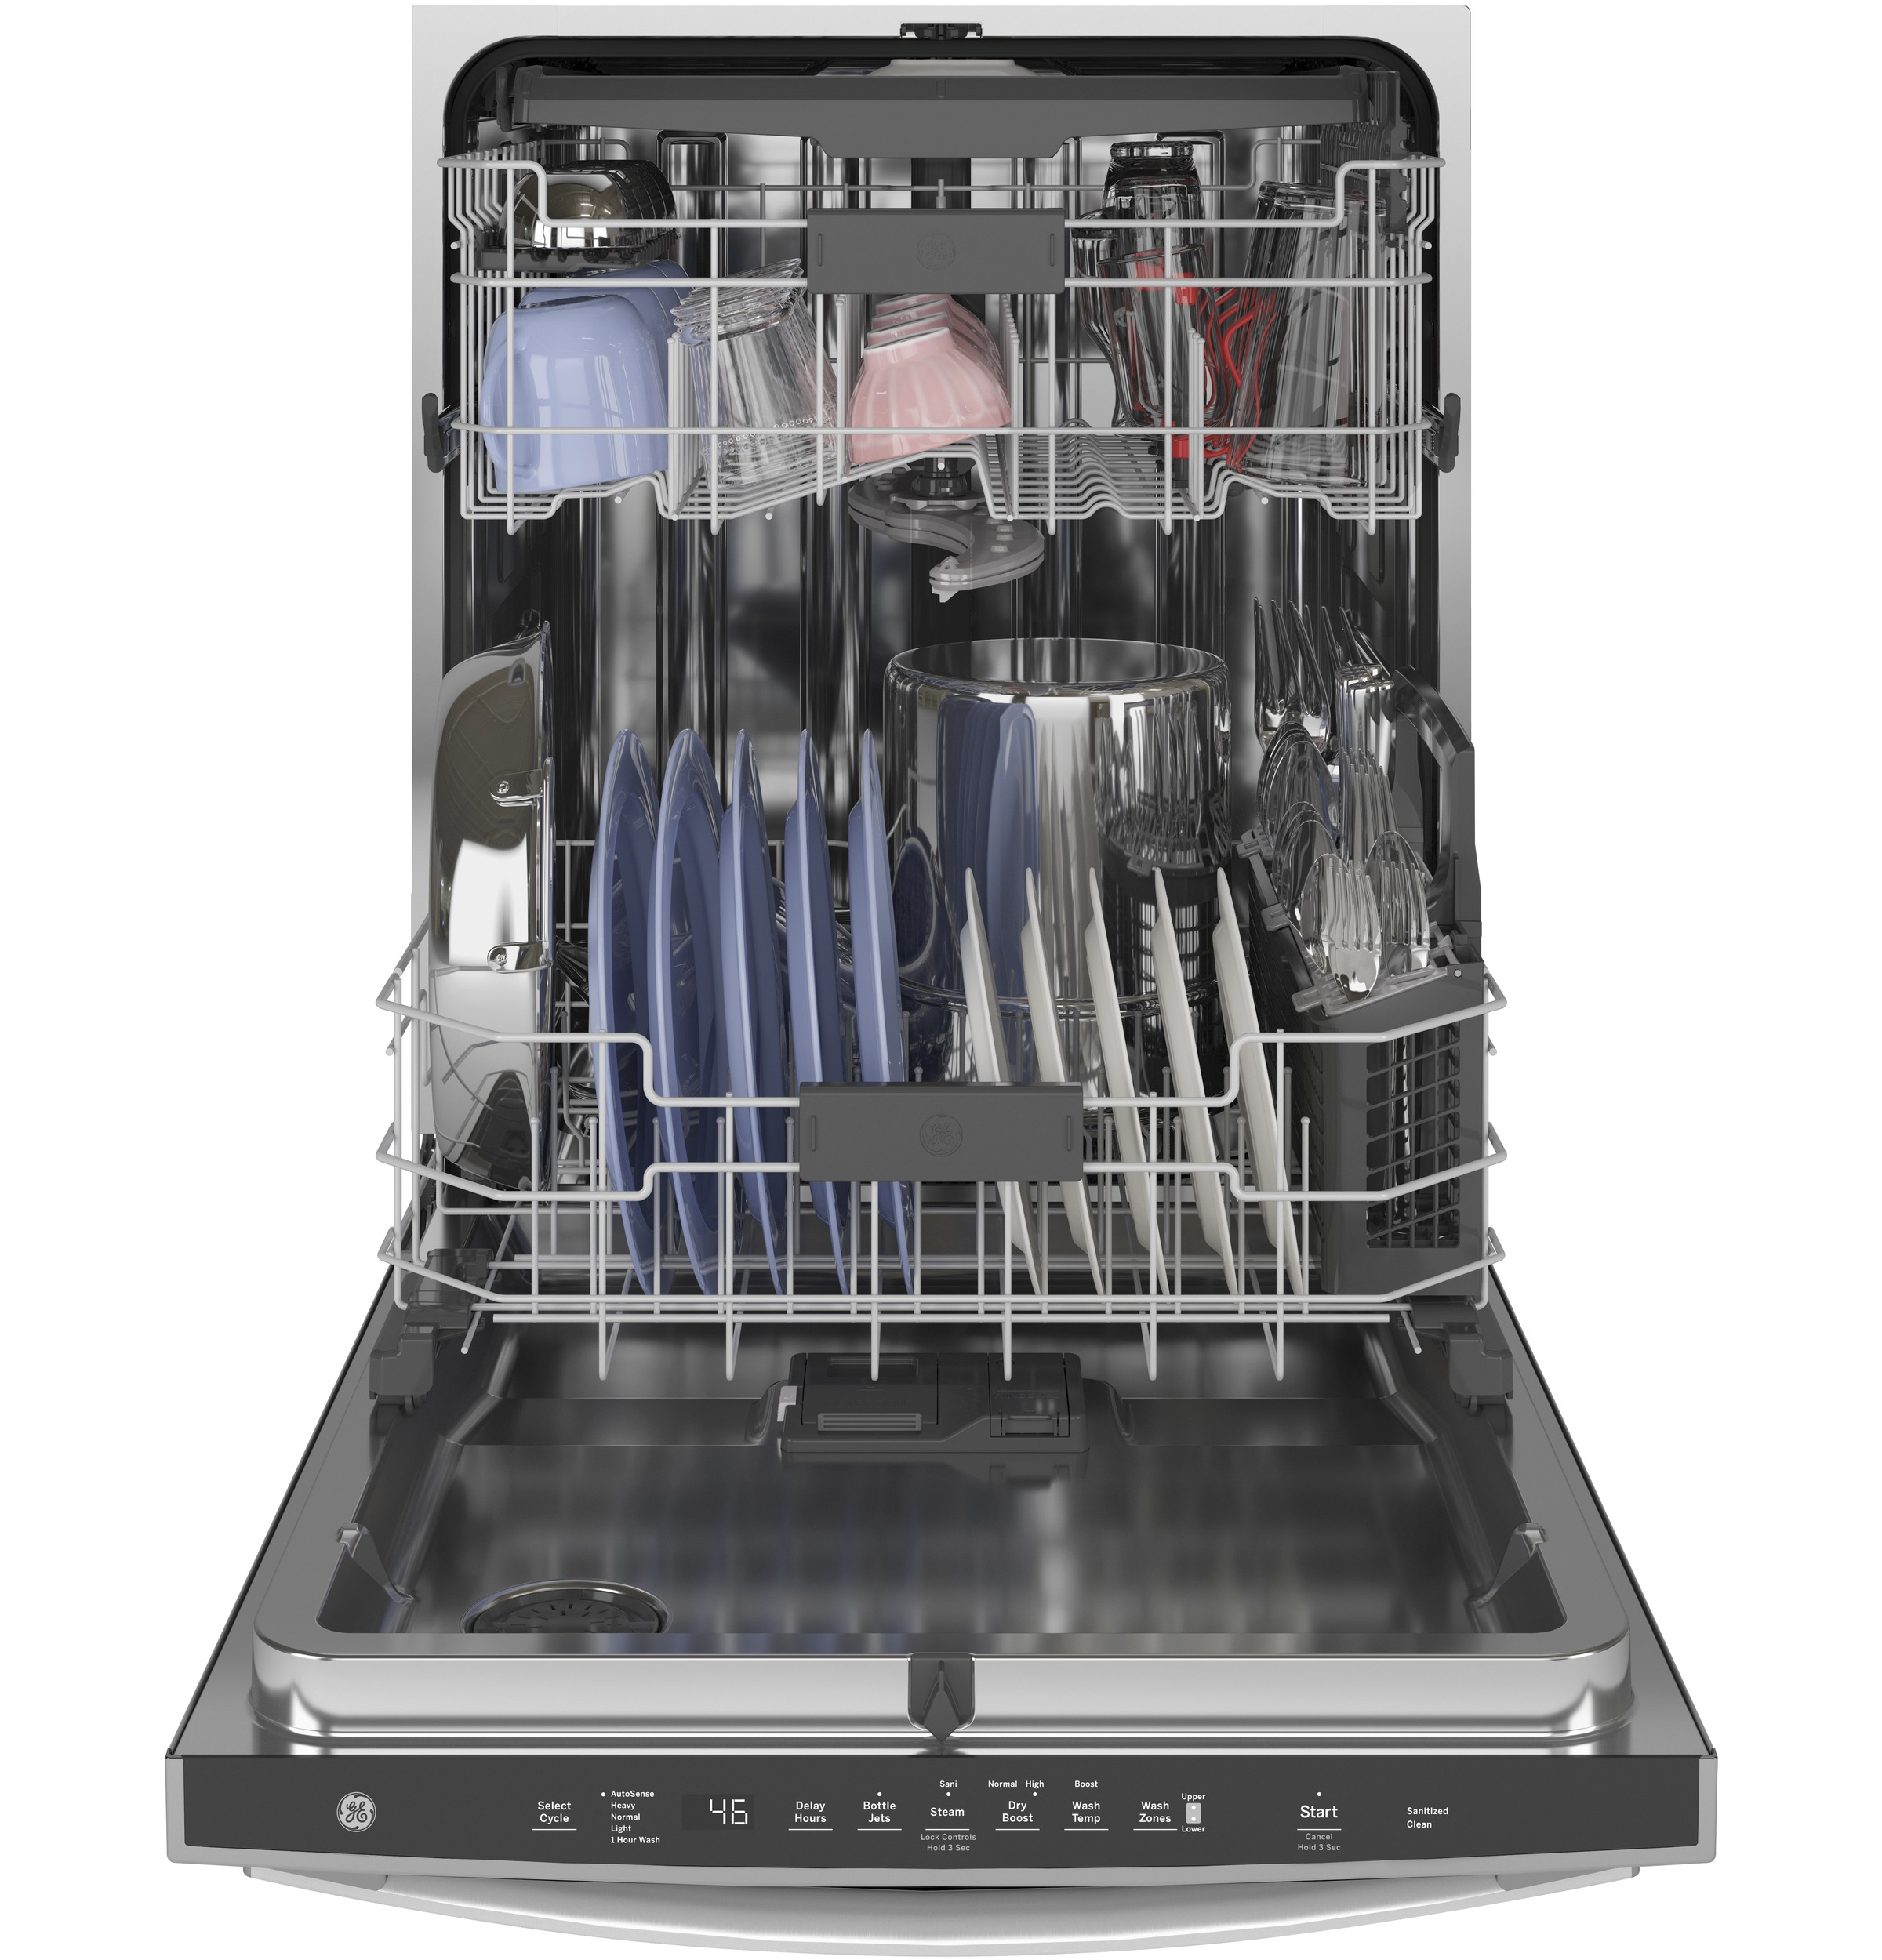 Model: GDT665SSNSS | GE GE® Top Control with Stainless Steel Interior Dishwasher with Sanitize Cycle & Dry Boost with Fan Assist